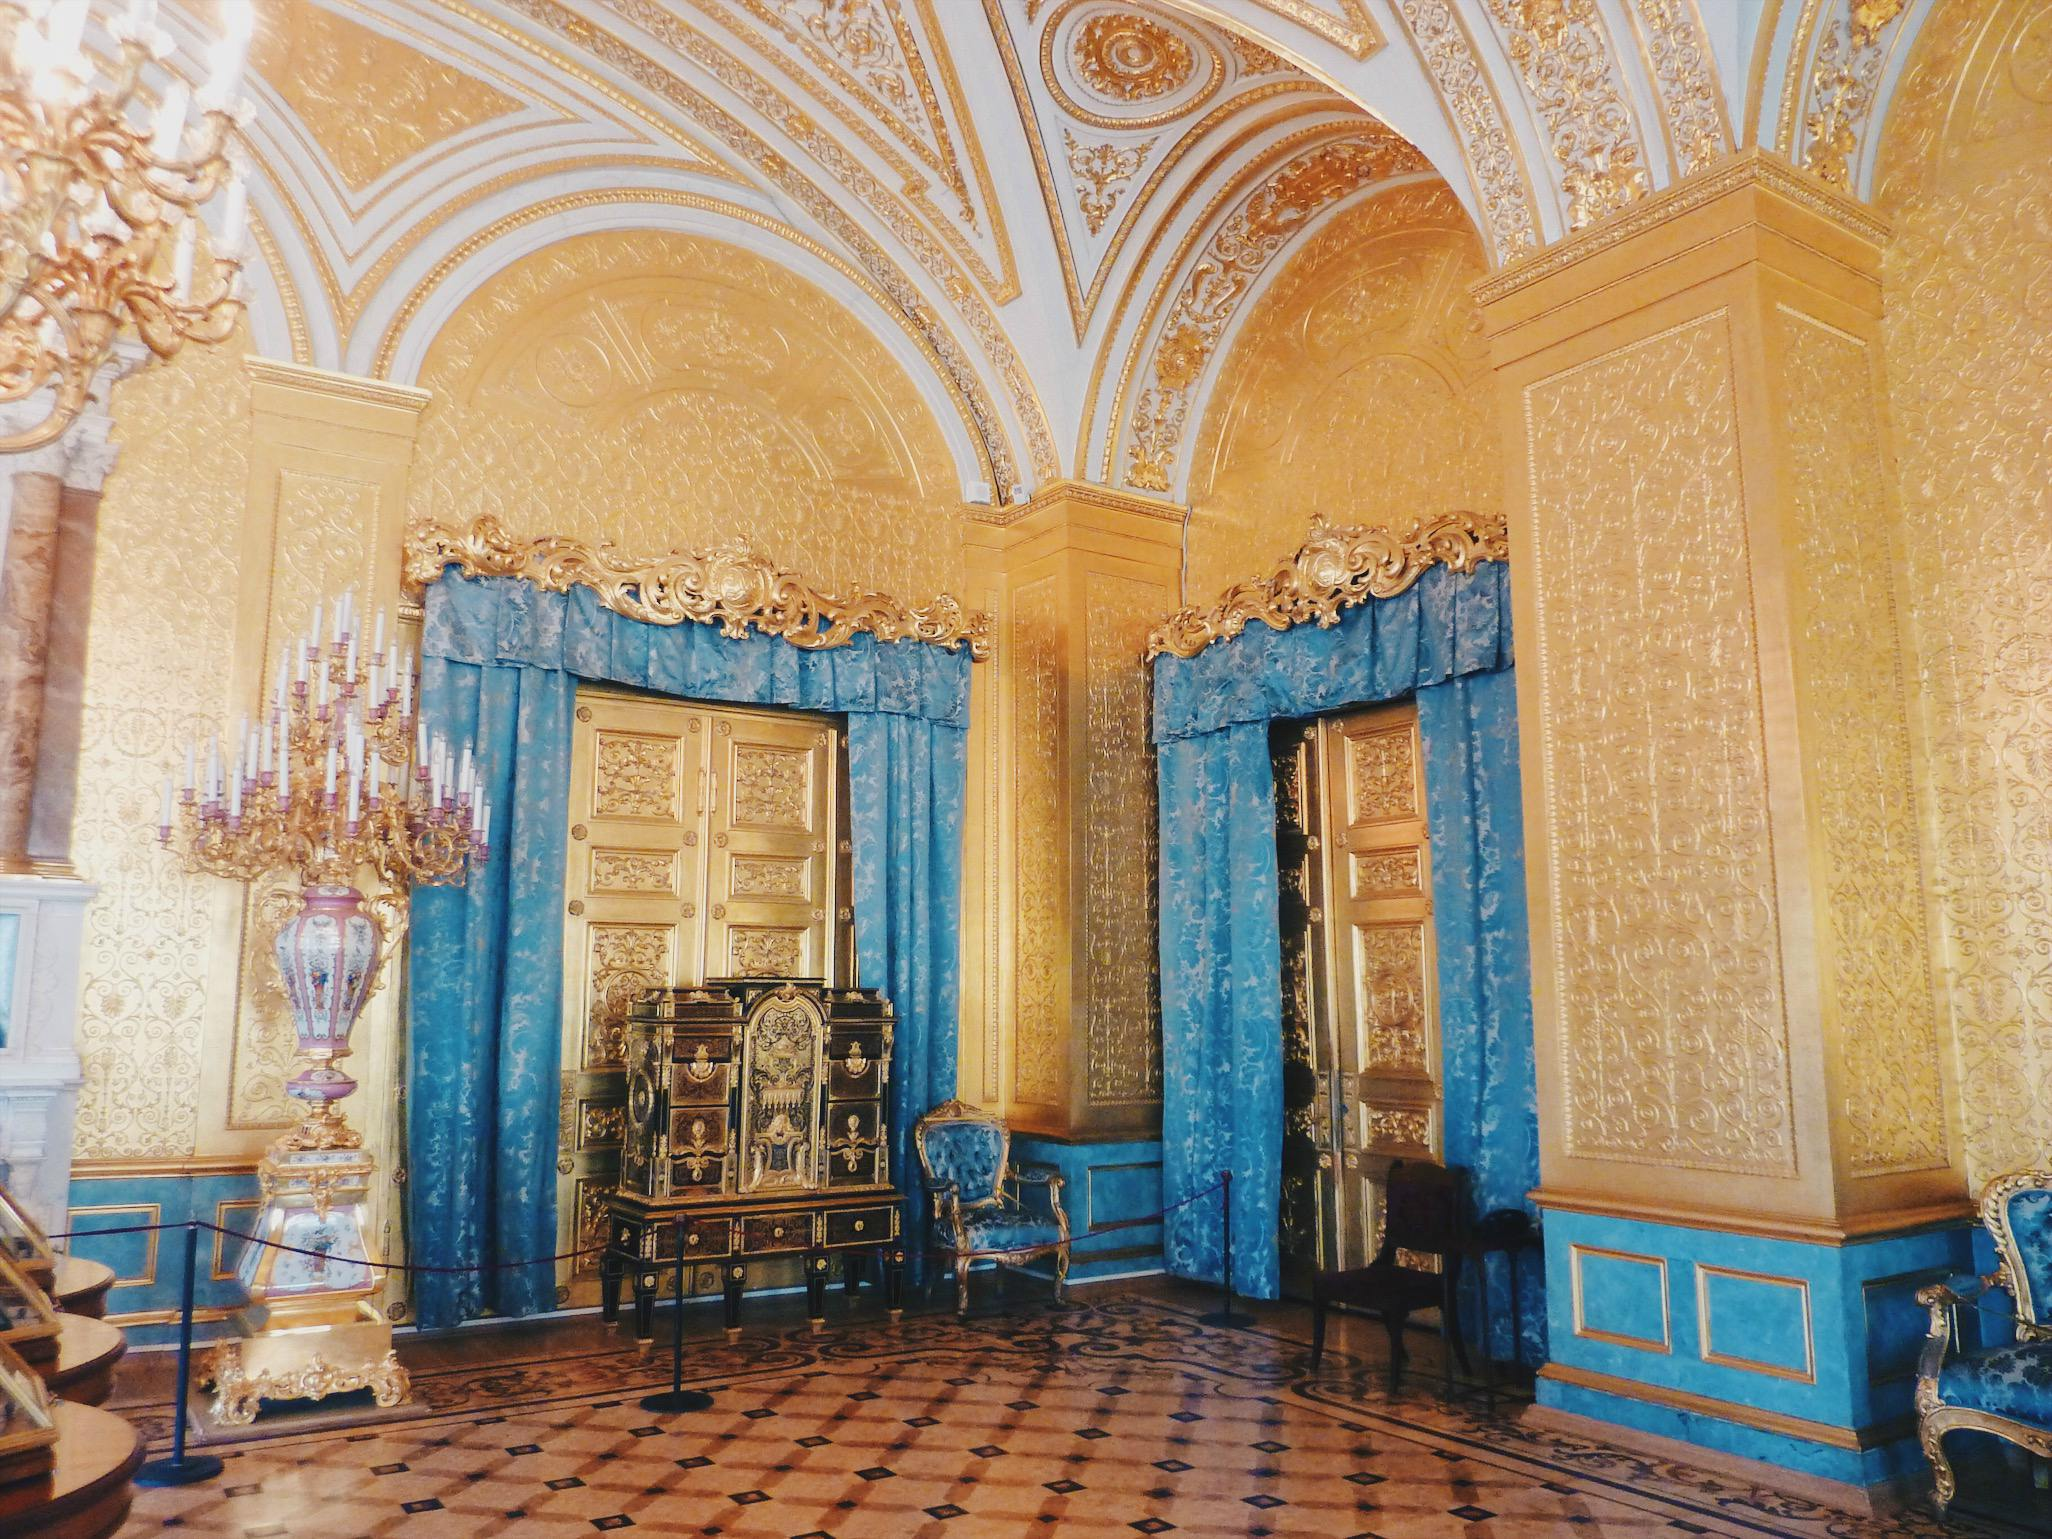 5 reasons to visit St. Peterburg in Russia during the spring, and this is one of them: The State Hermitage Museum.